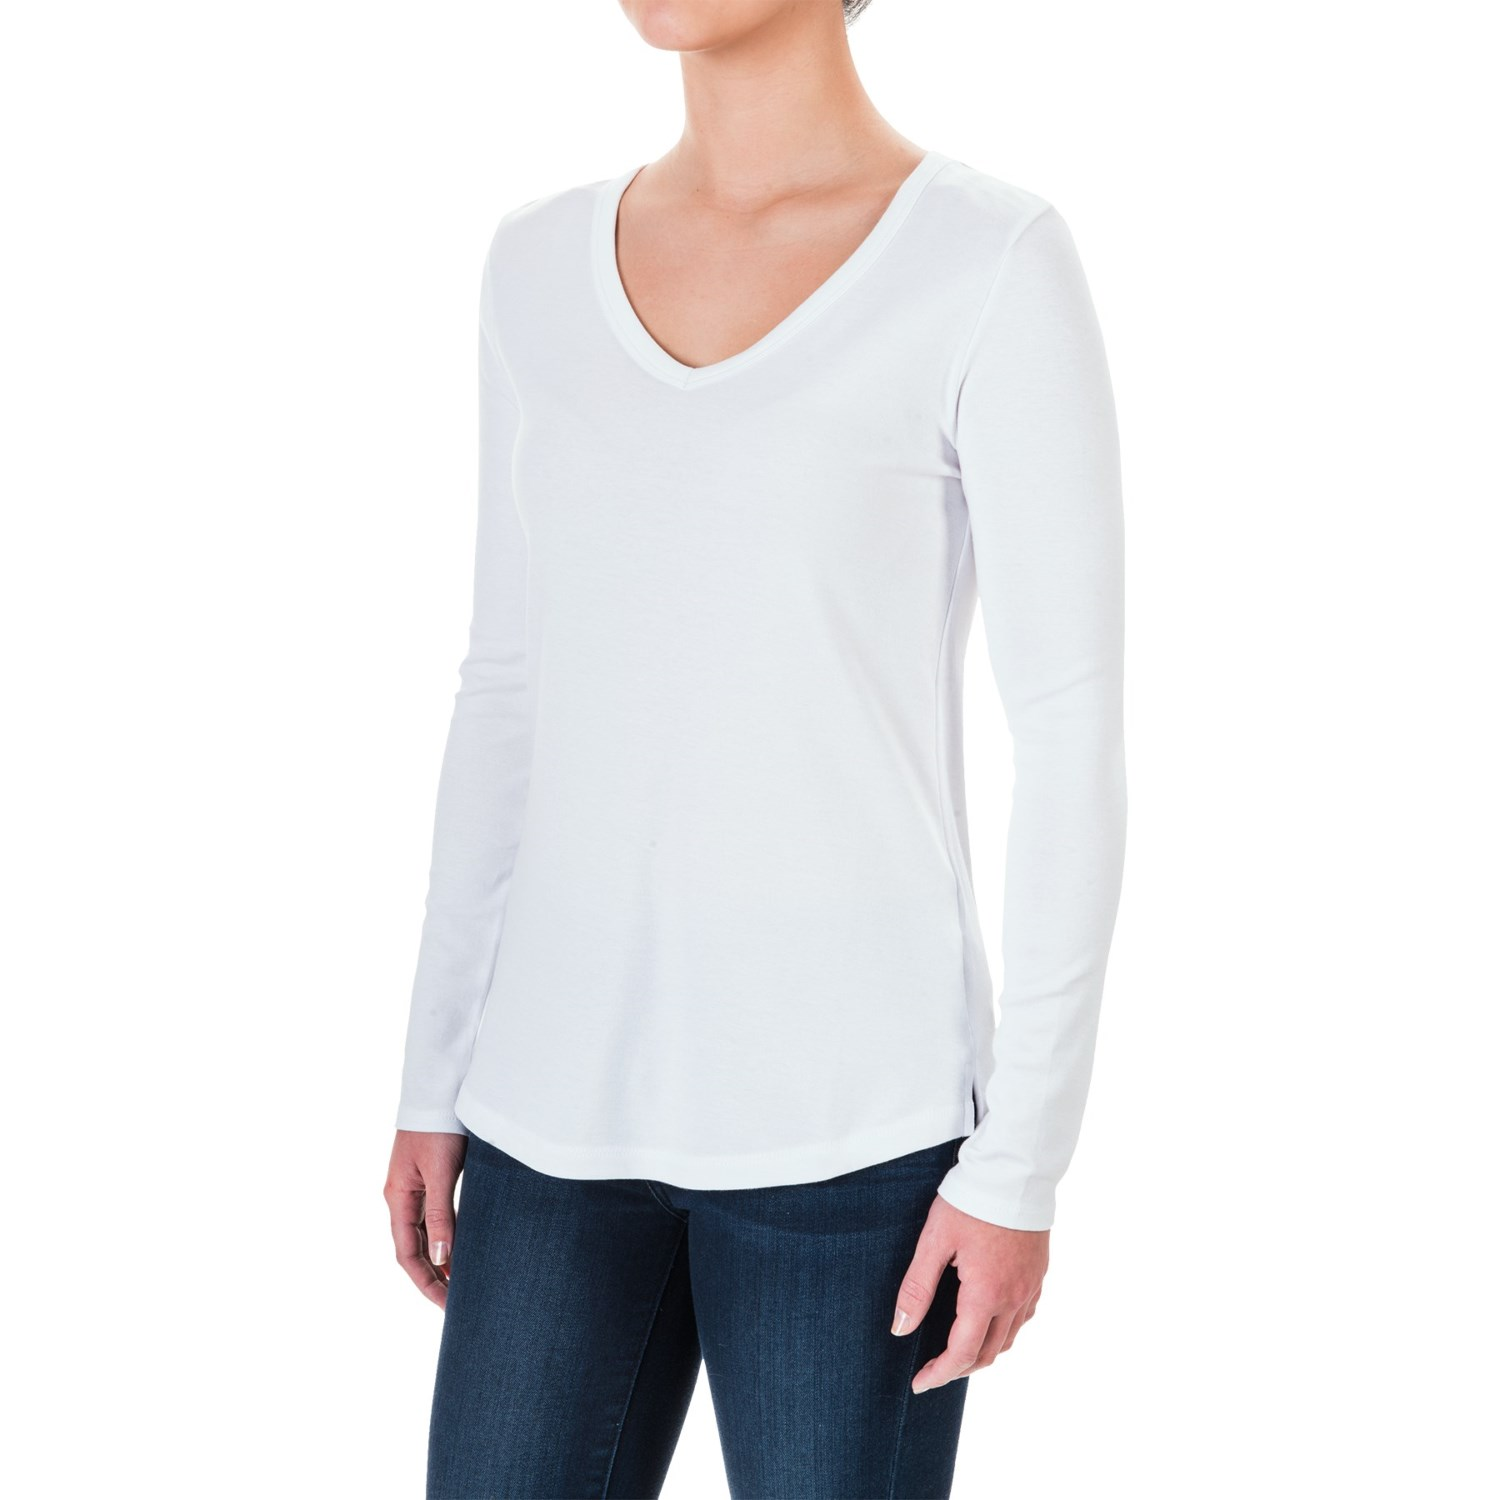 Cynthia Rowley V-Neck Shirt (For Women) 191GY - Save 46%